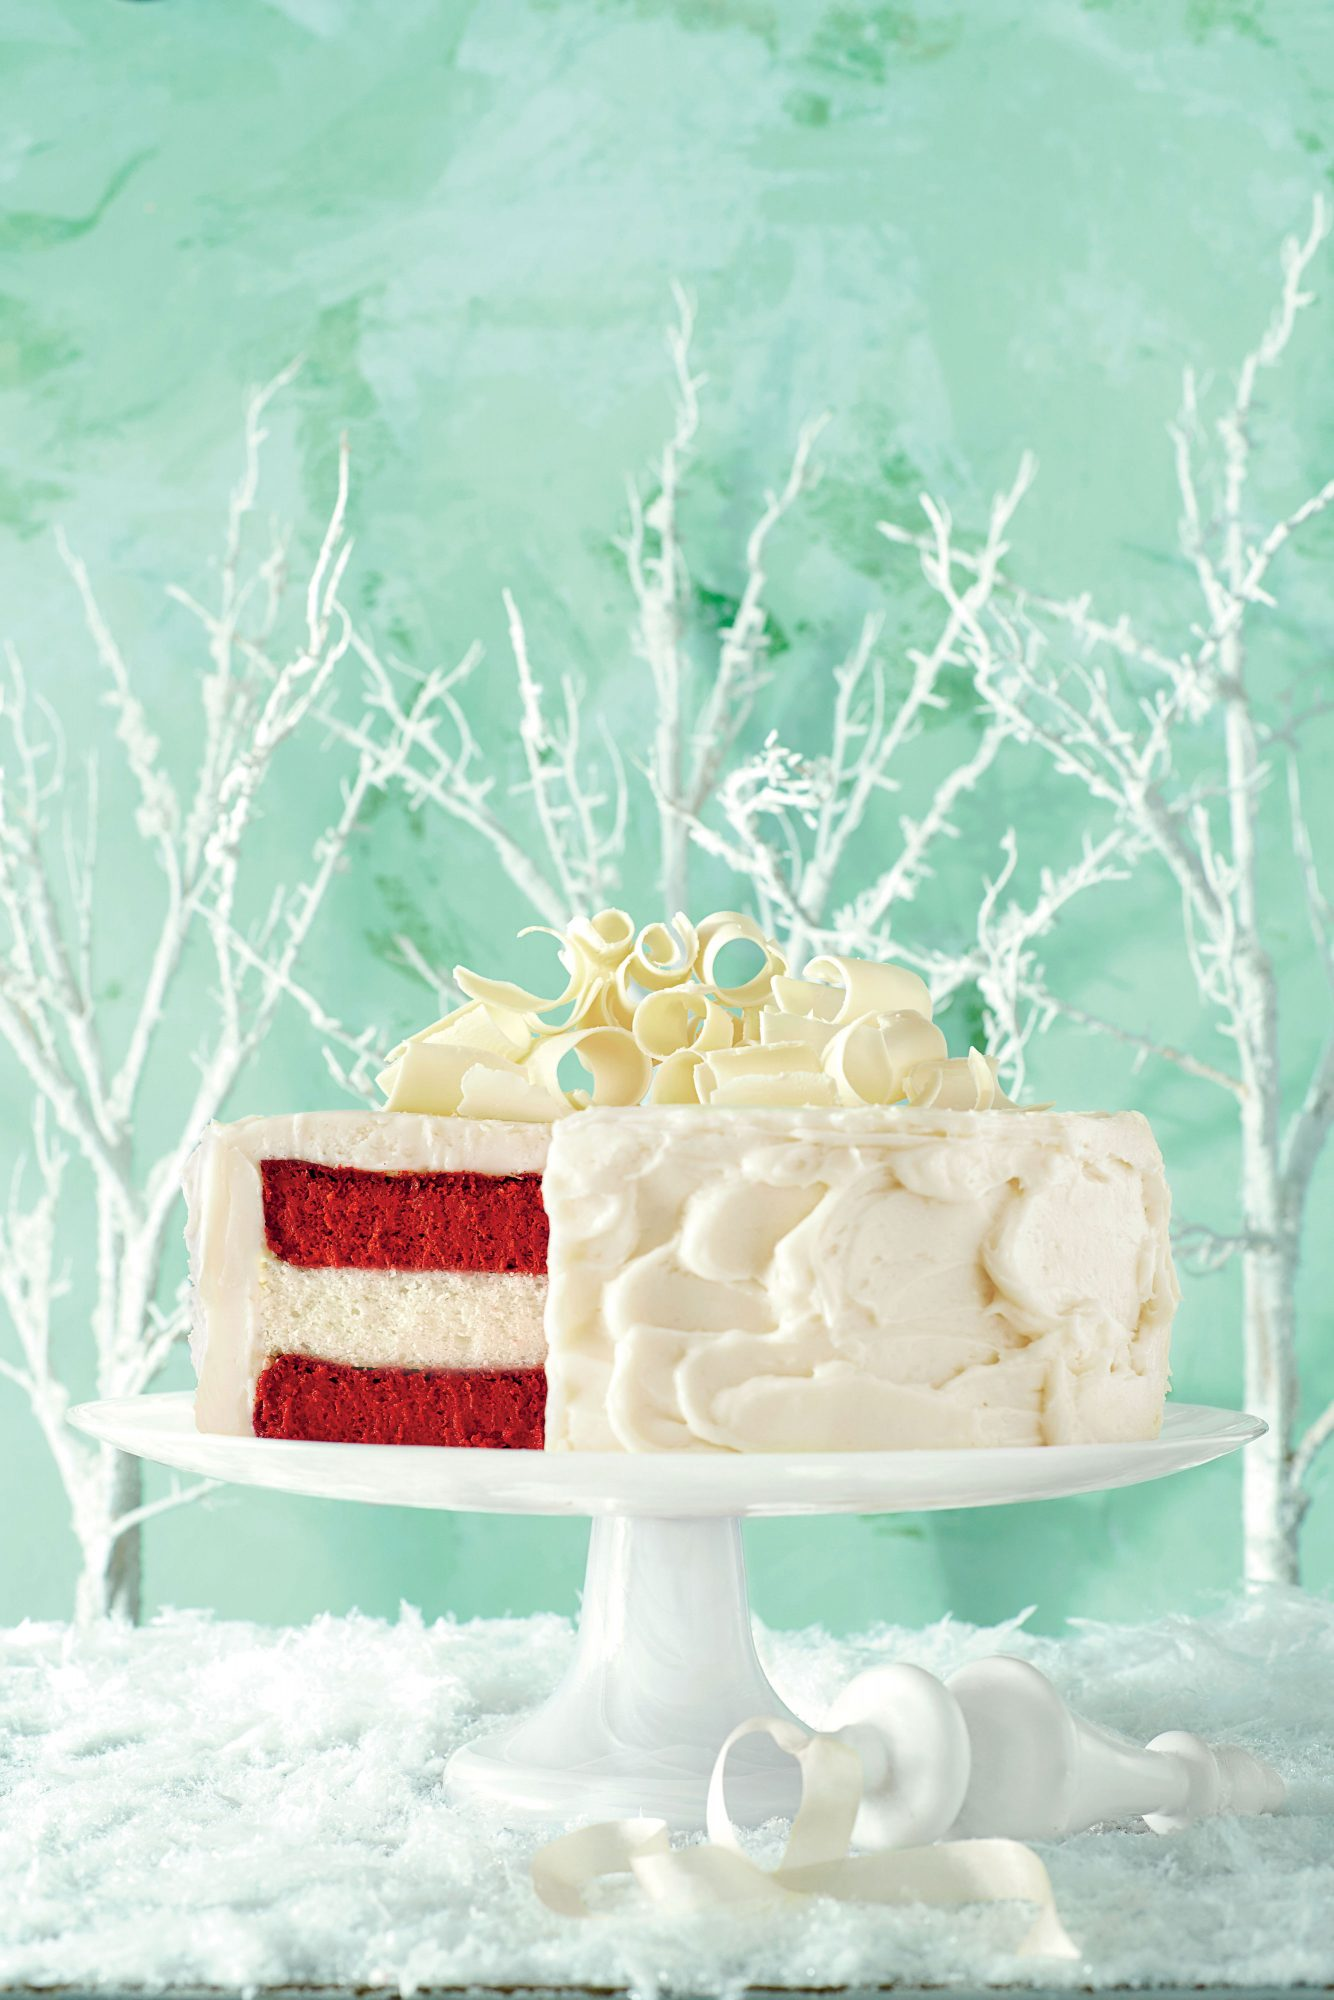 Red Velvet Cheesecake-Vanilla Cake with Cream Cheese Frosting image